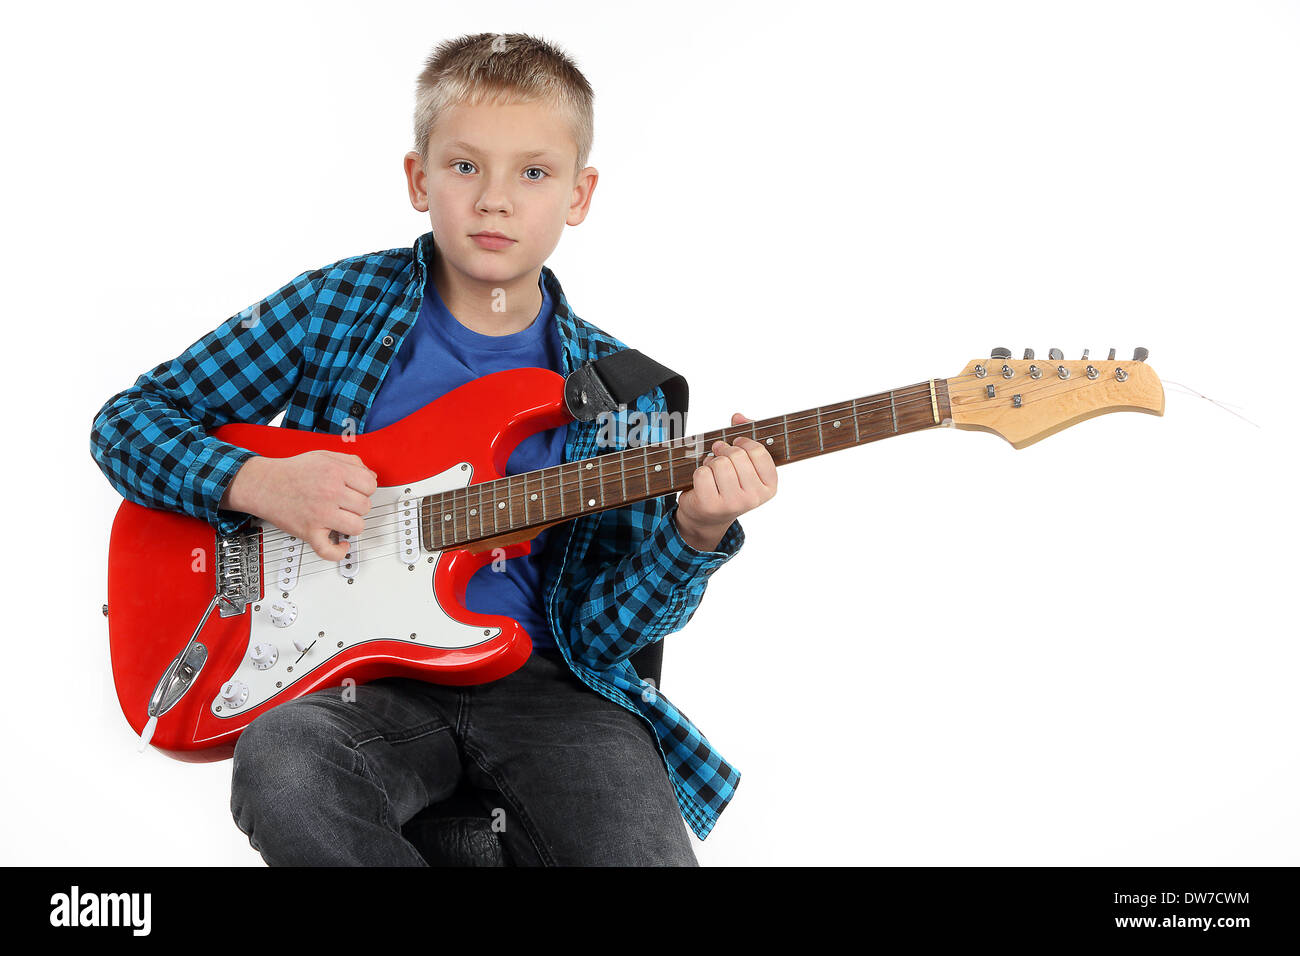 Handsome young boy playing on red electric guitar on white background - Stock Image